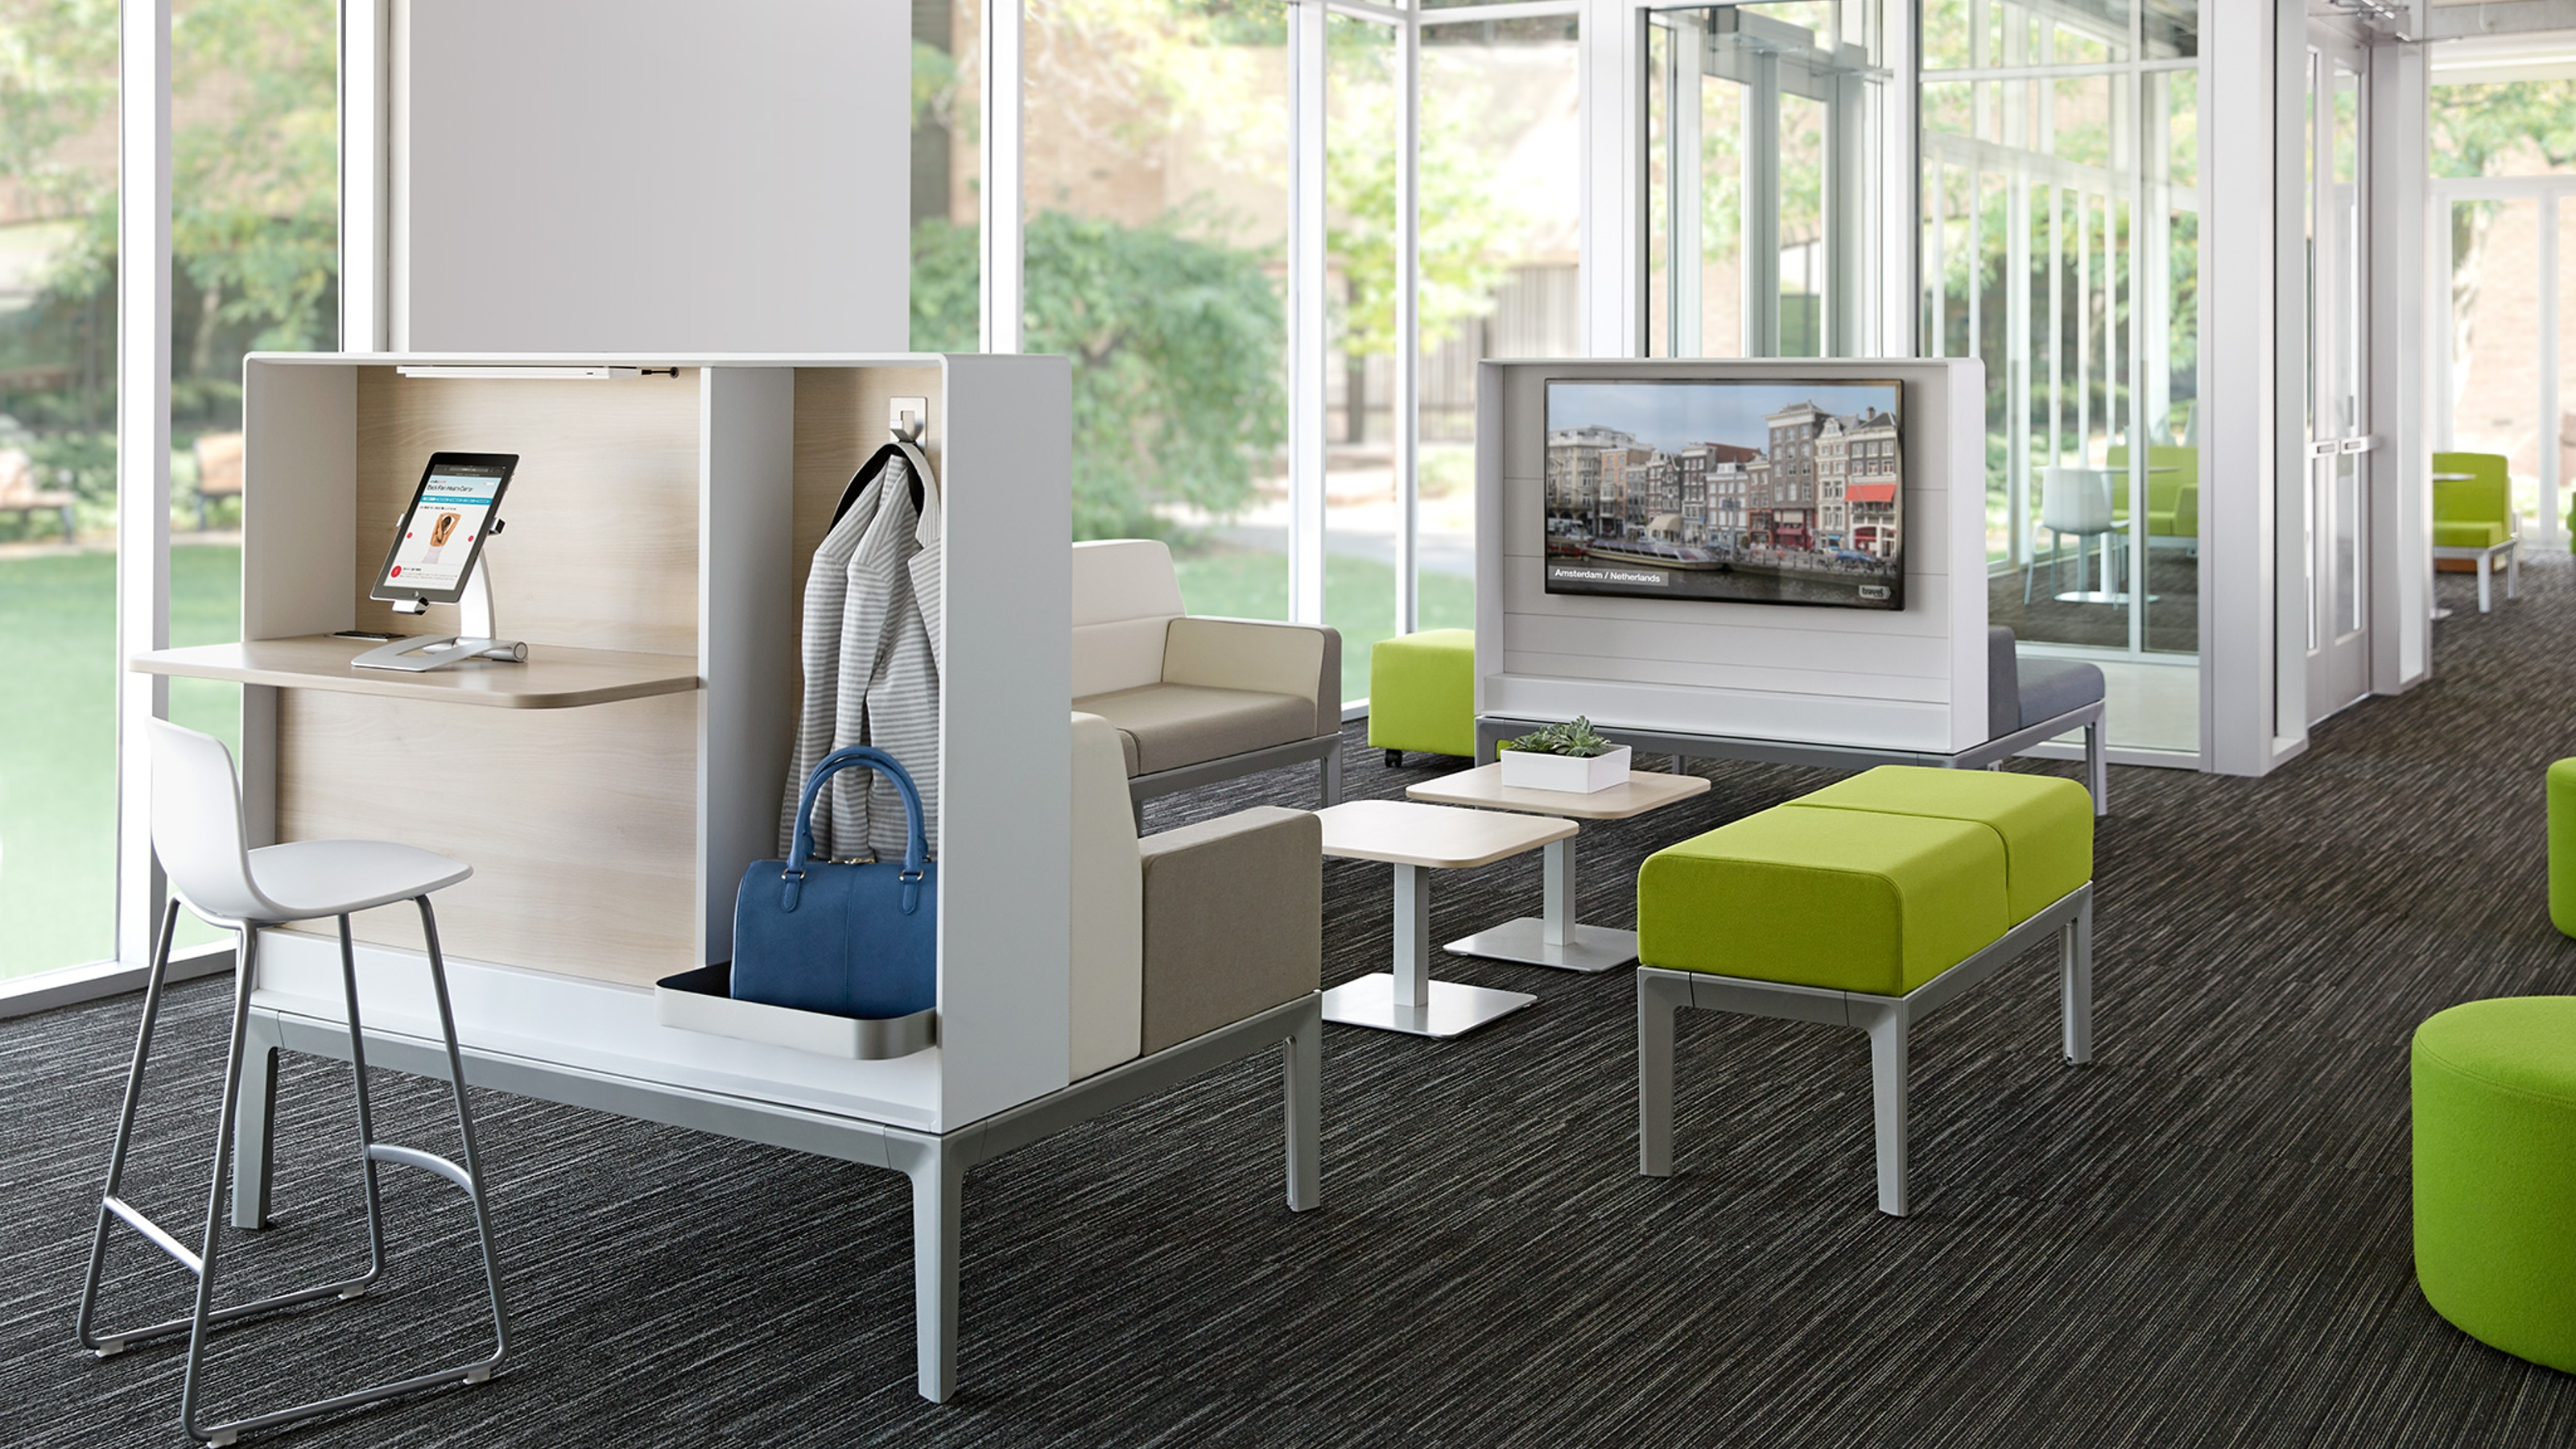 Regard Modular Lounge Seating & Casegoods - Steelcase